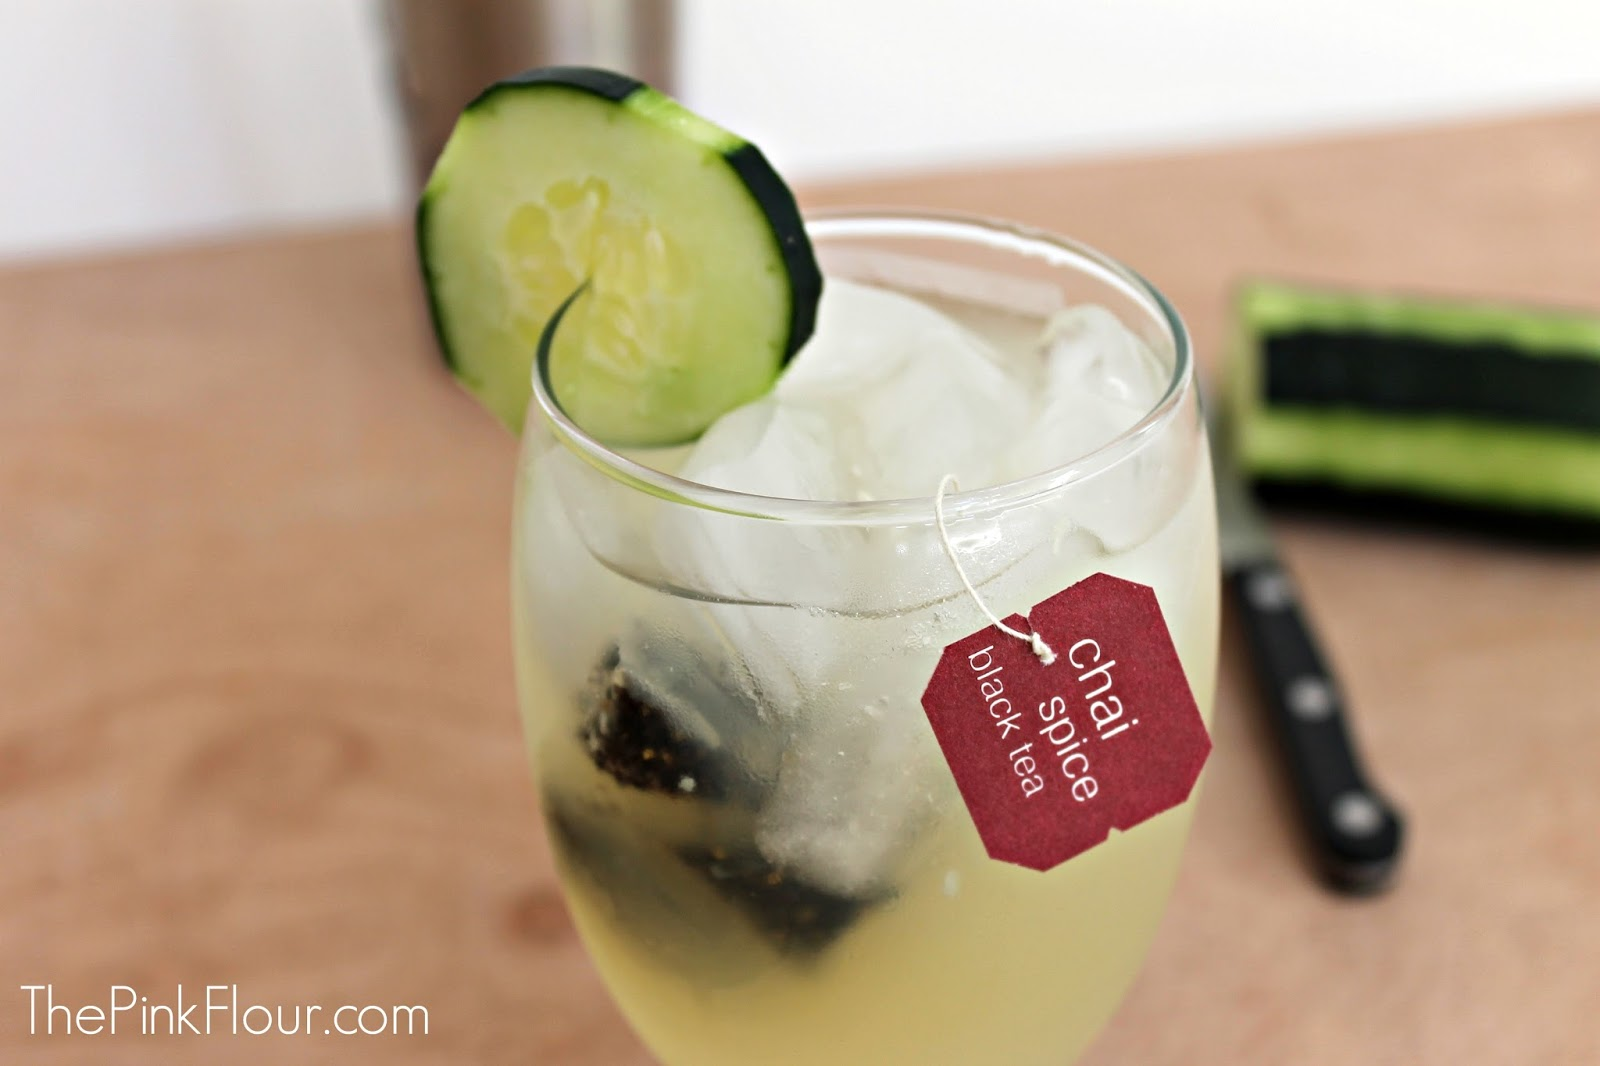 Chai Cucumber Lemonade www.thepinkflour.com #lemonade #drink #recipe #chai #cucumber